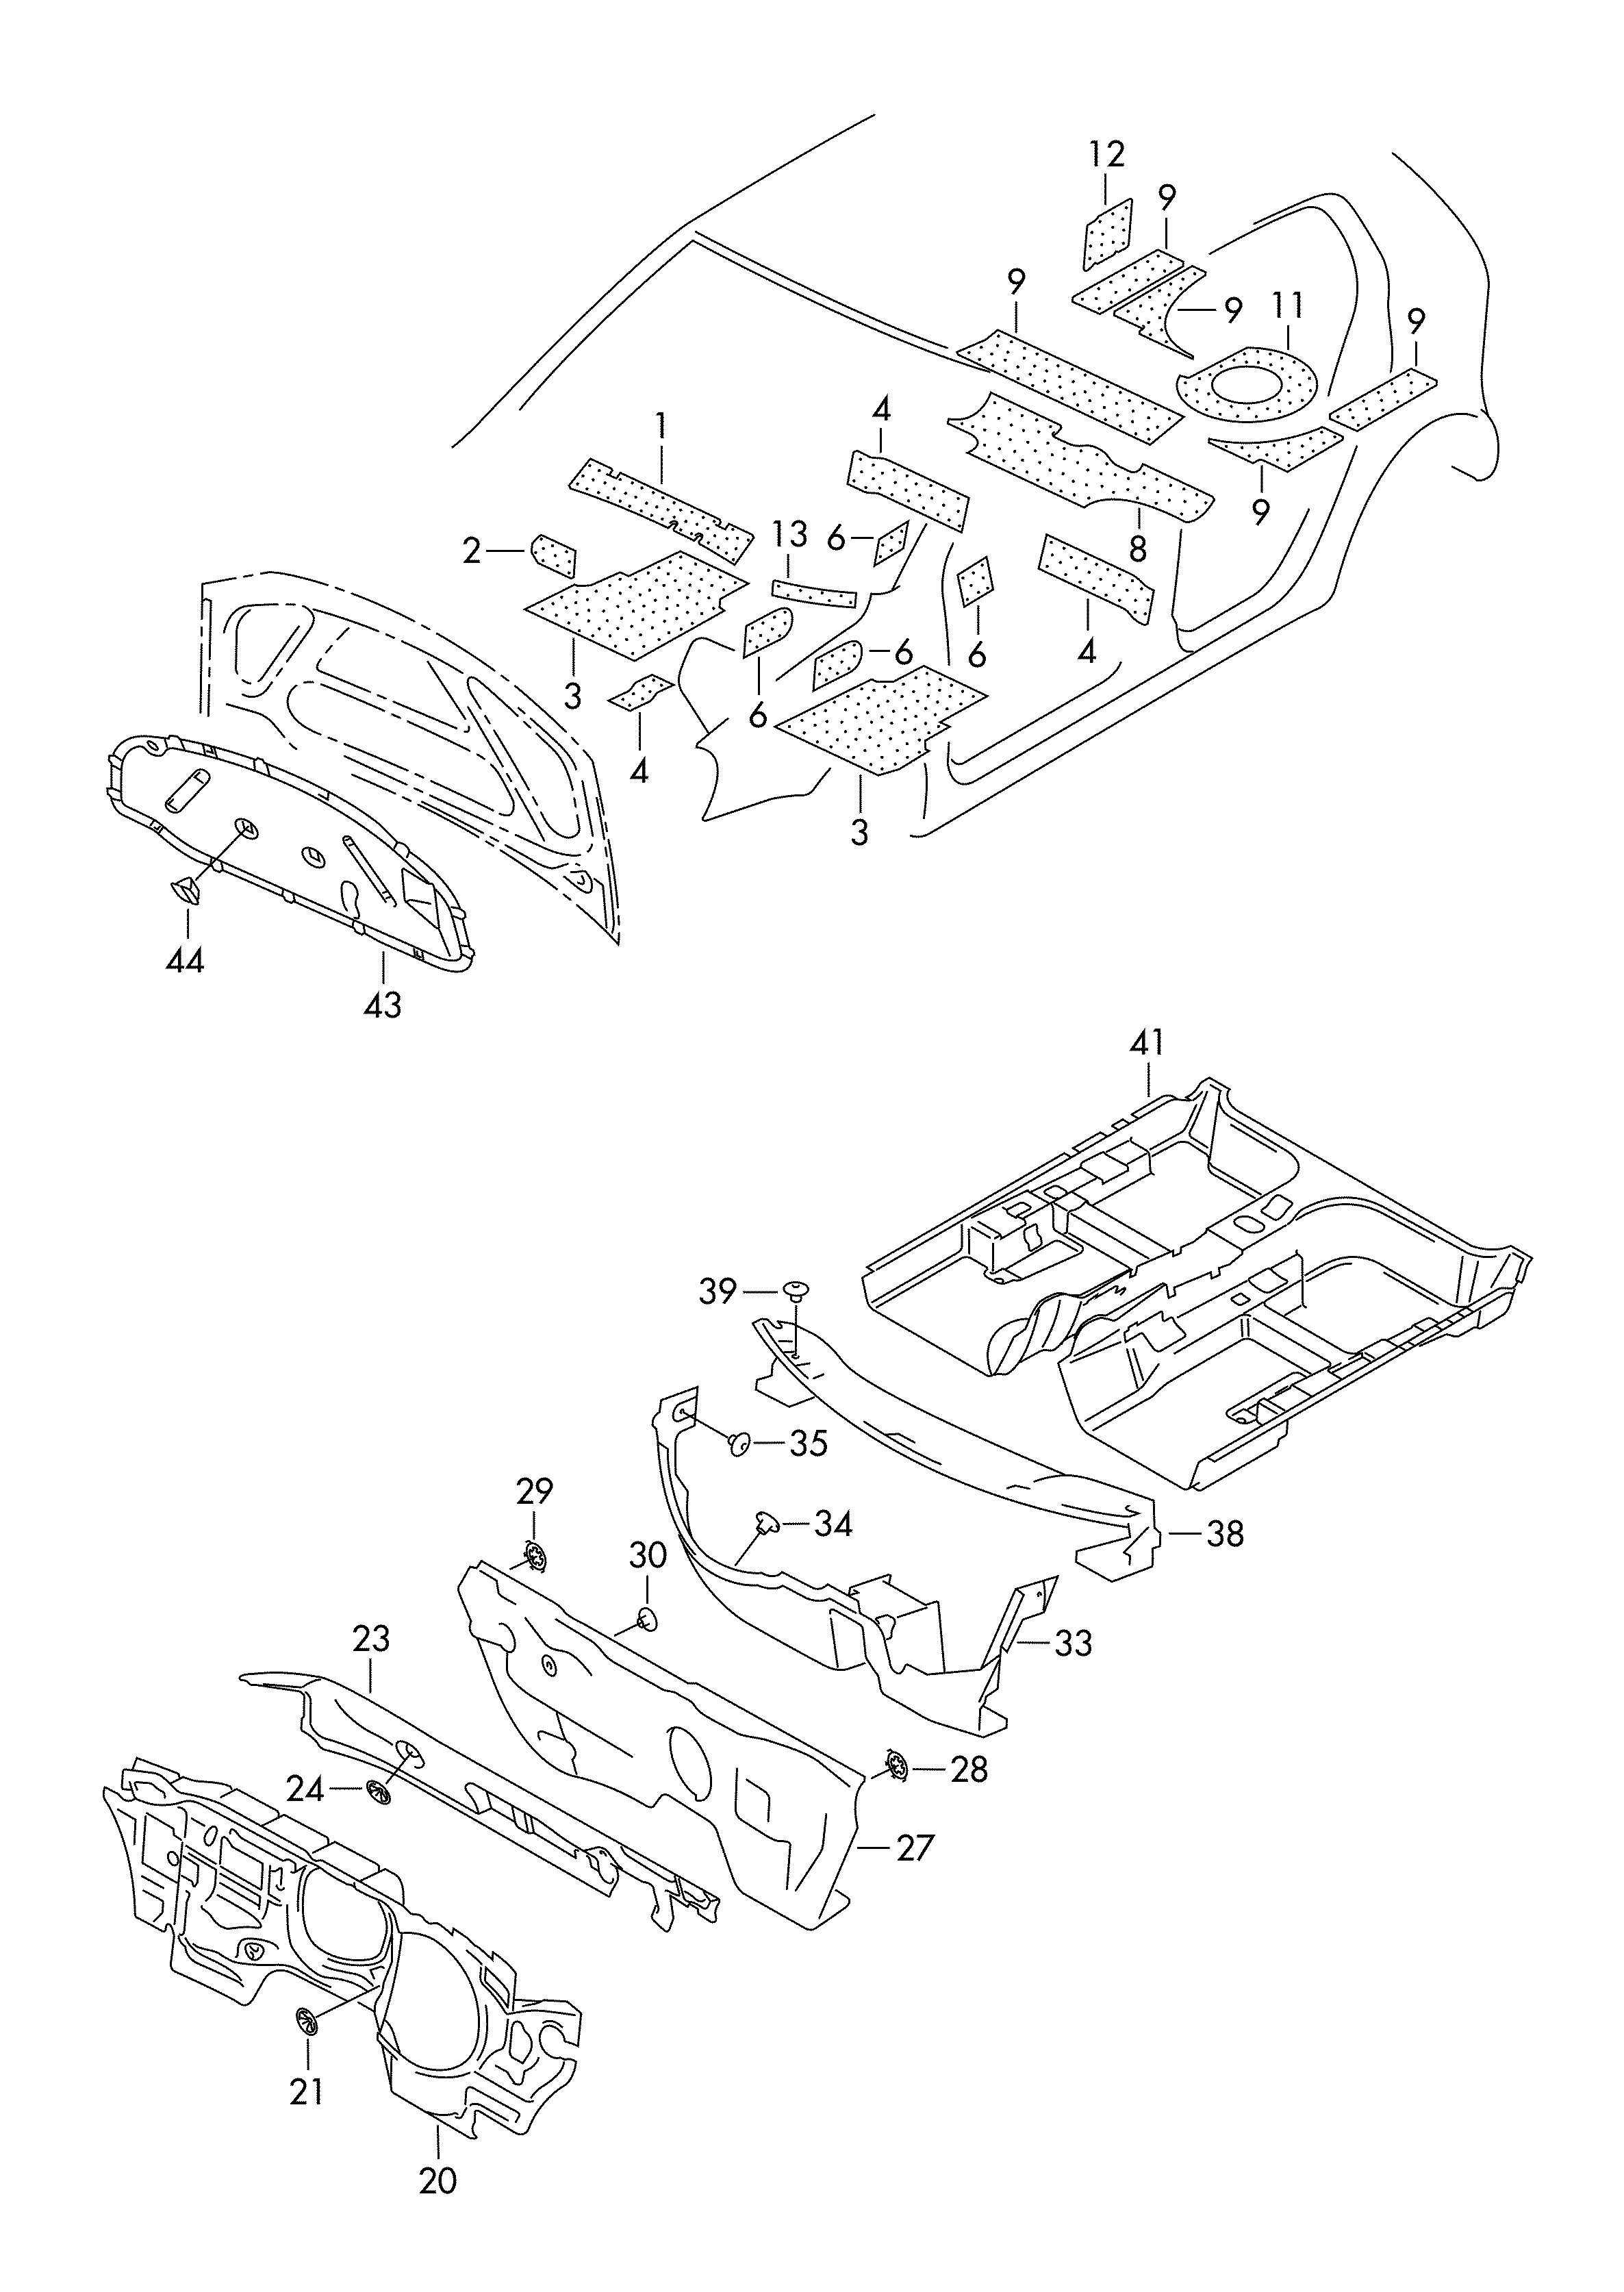 Vw also Rabbit Wiring Diagram besides T9161014 Vw golf 1999 additionally 01 Volkswagen New Beetle Fuse Box Diagram additionally ShowAssembly. on volkswagen beetle engine compartment